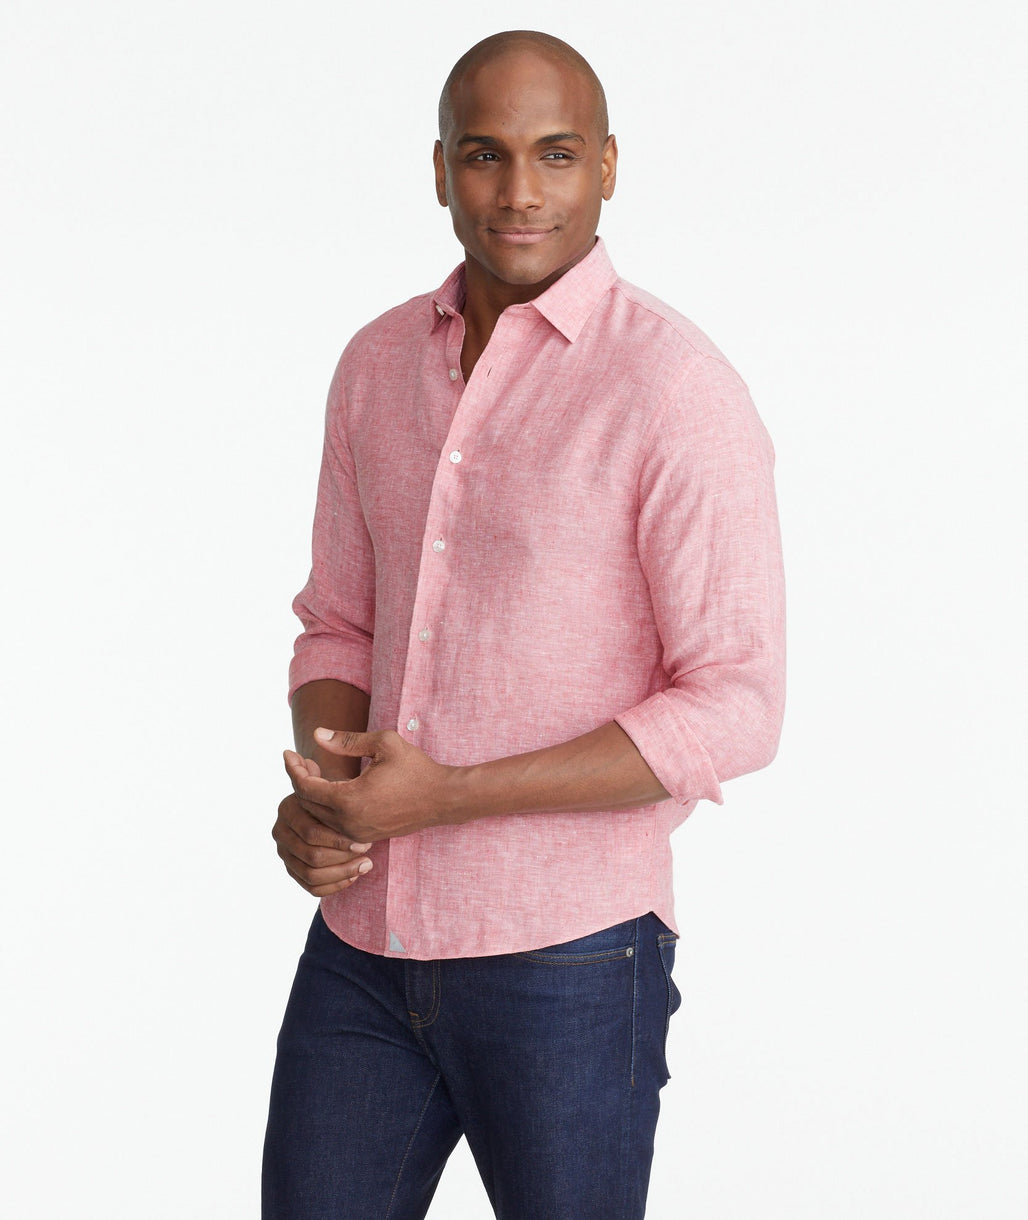 Model wearing a Mid Red Wrinkle-Resistant Linen Eberle Shirt